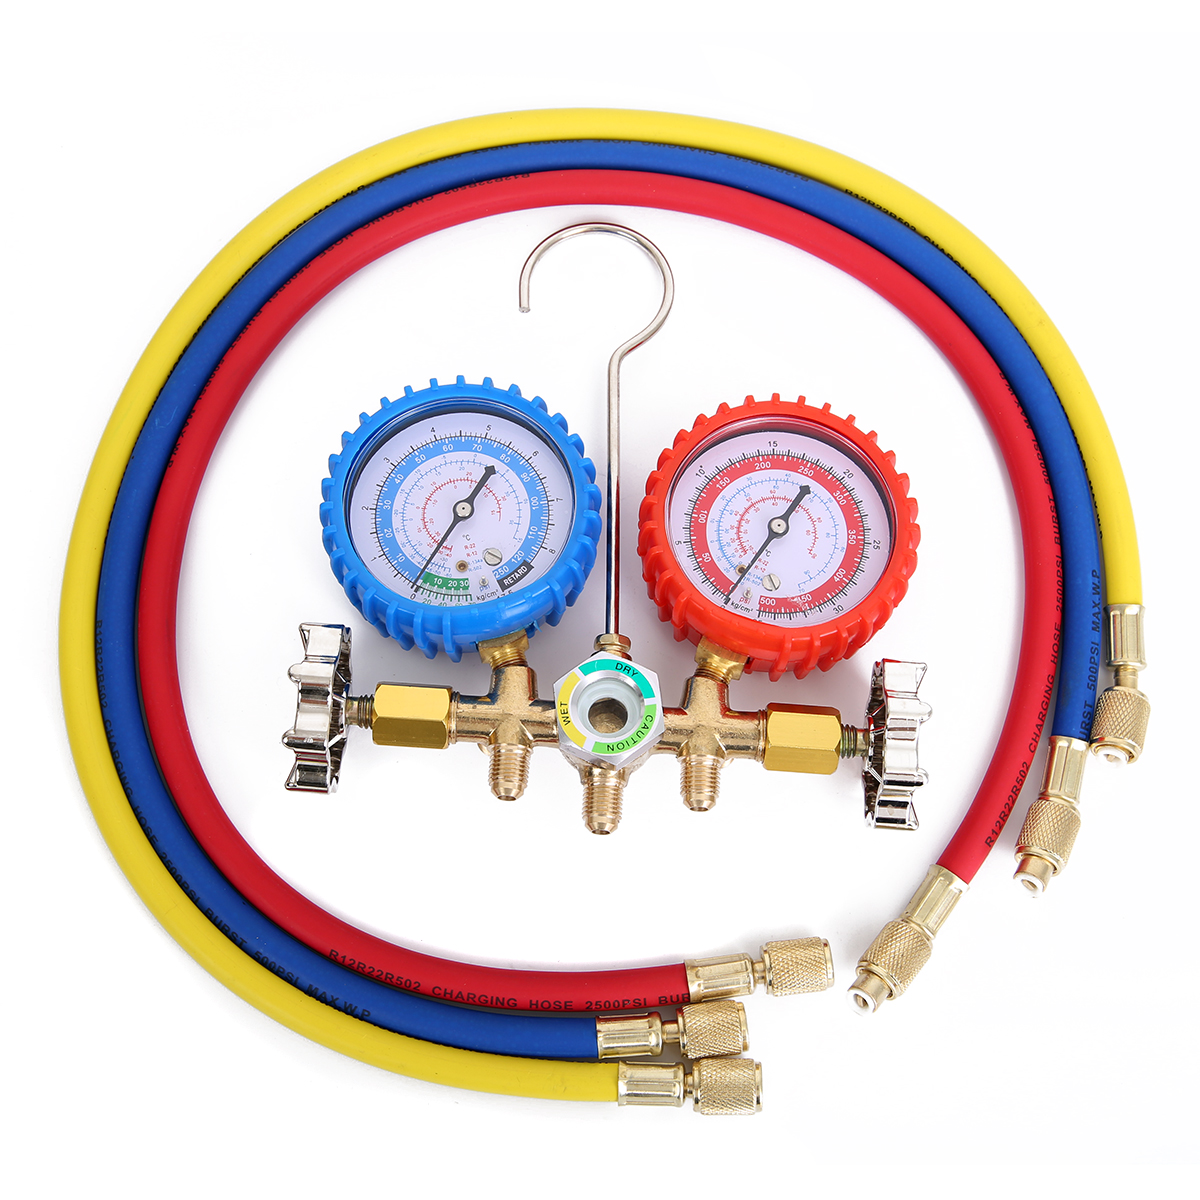 Mayitr Refrigeration Manifold Gauge Set with 85cm Charging Hose For R134A R12 R22 R404z Air Condition new manifold gauge set charging for r134a r12 r22 r404z air condition refrigeration